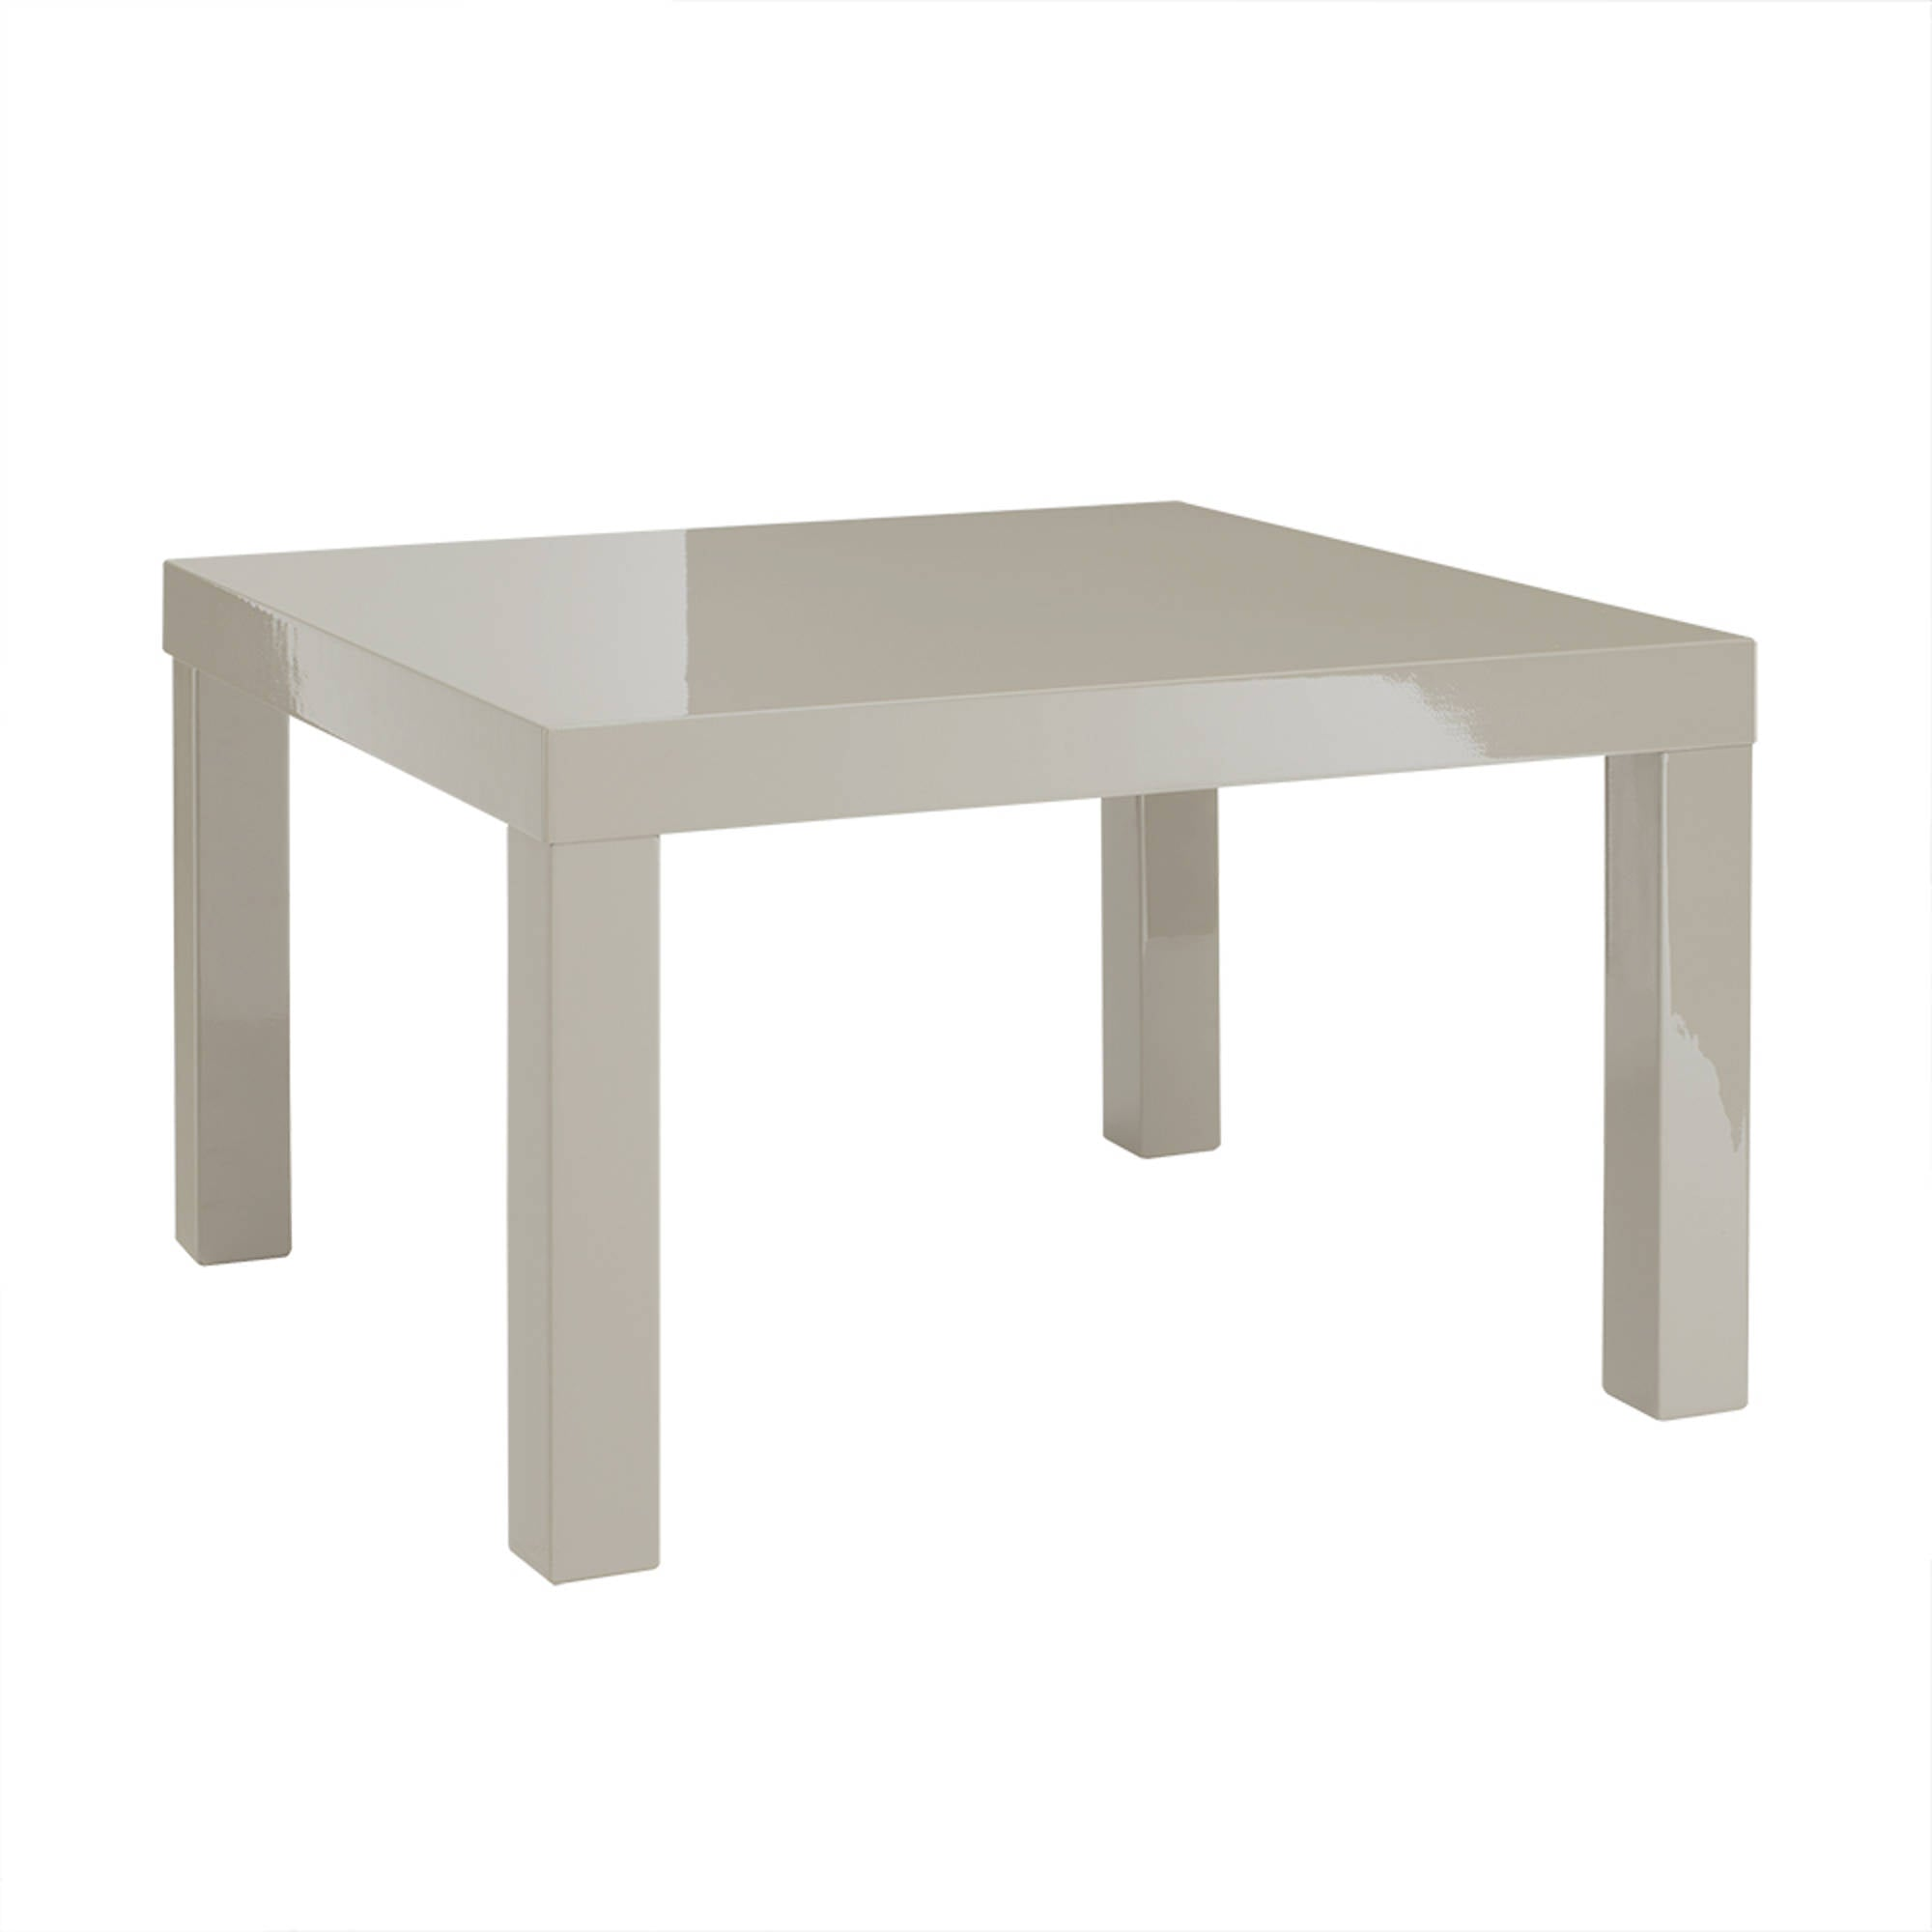 Sterling Console Table in Stone - Ezzo